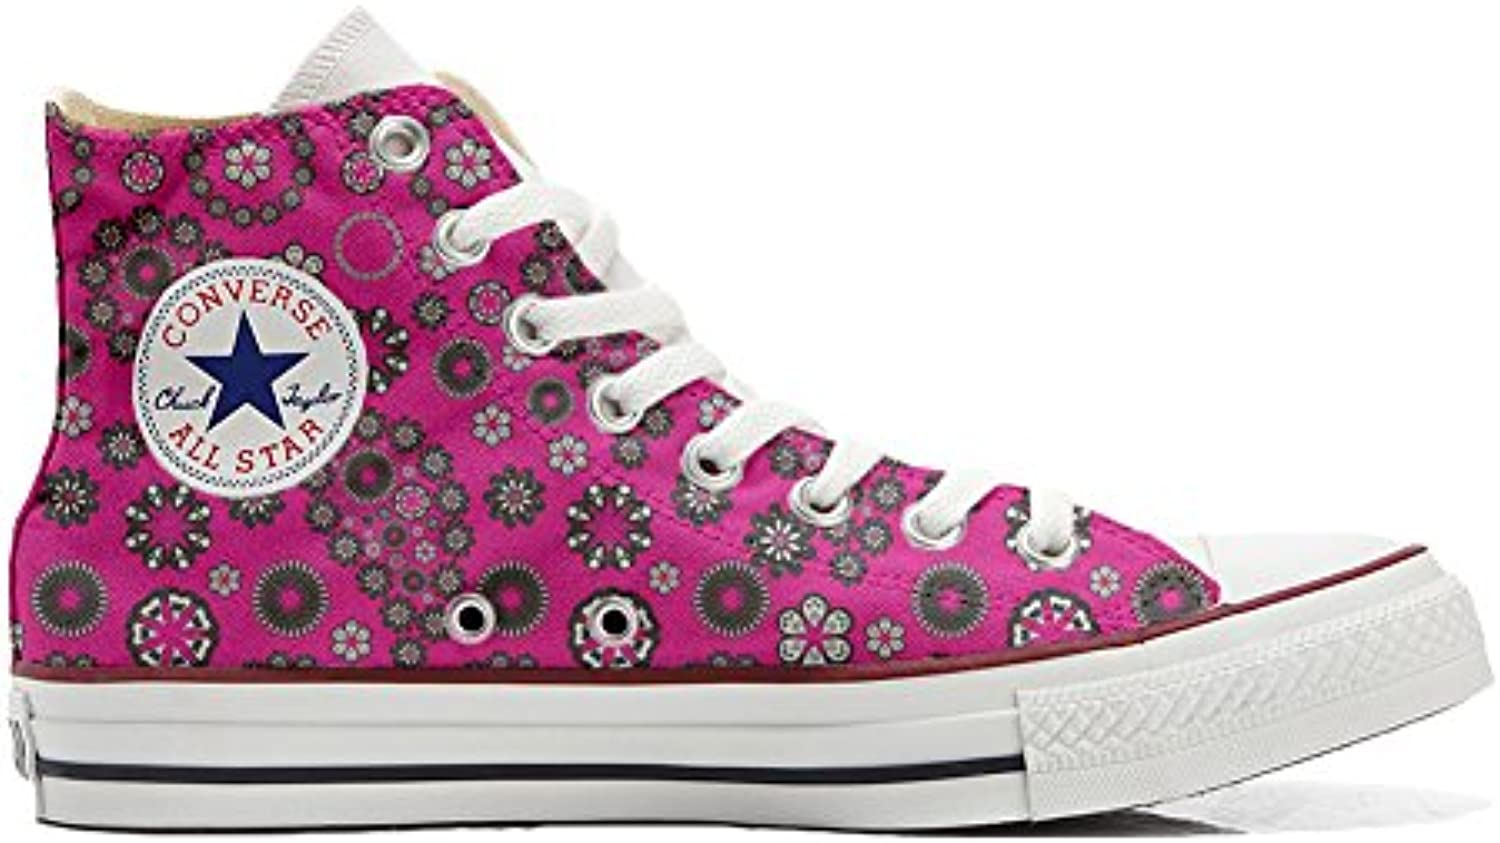 Converse All Star Customized - Zapatos Personalizados (Producto Artesano) Hot Pink Paysley  -